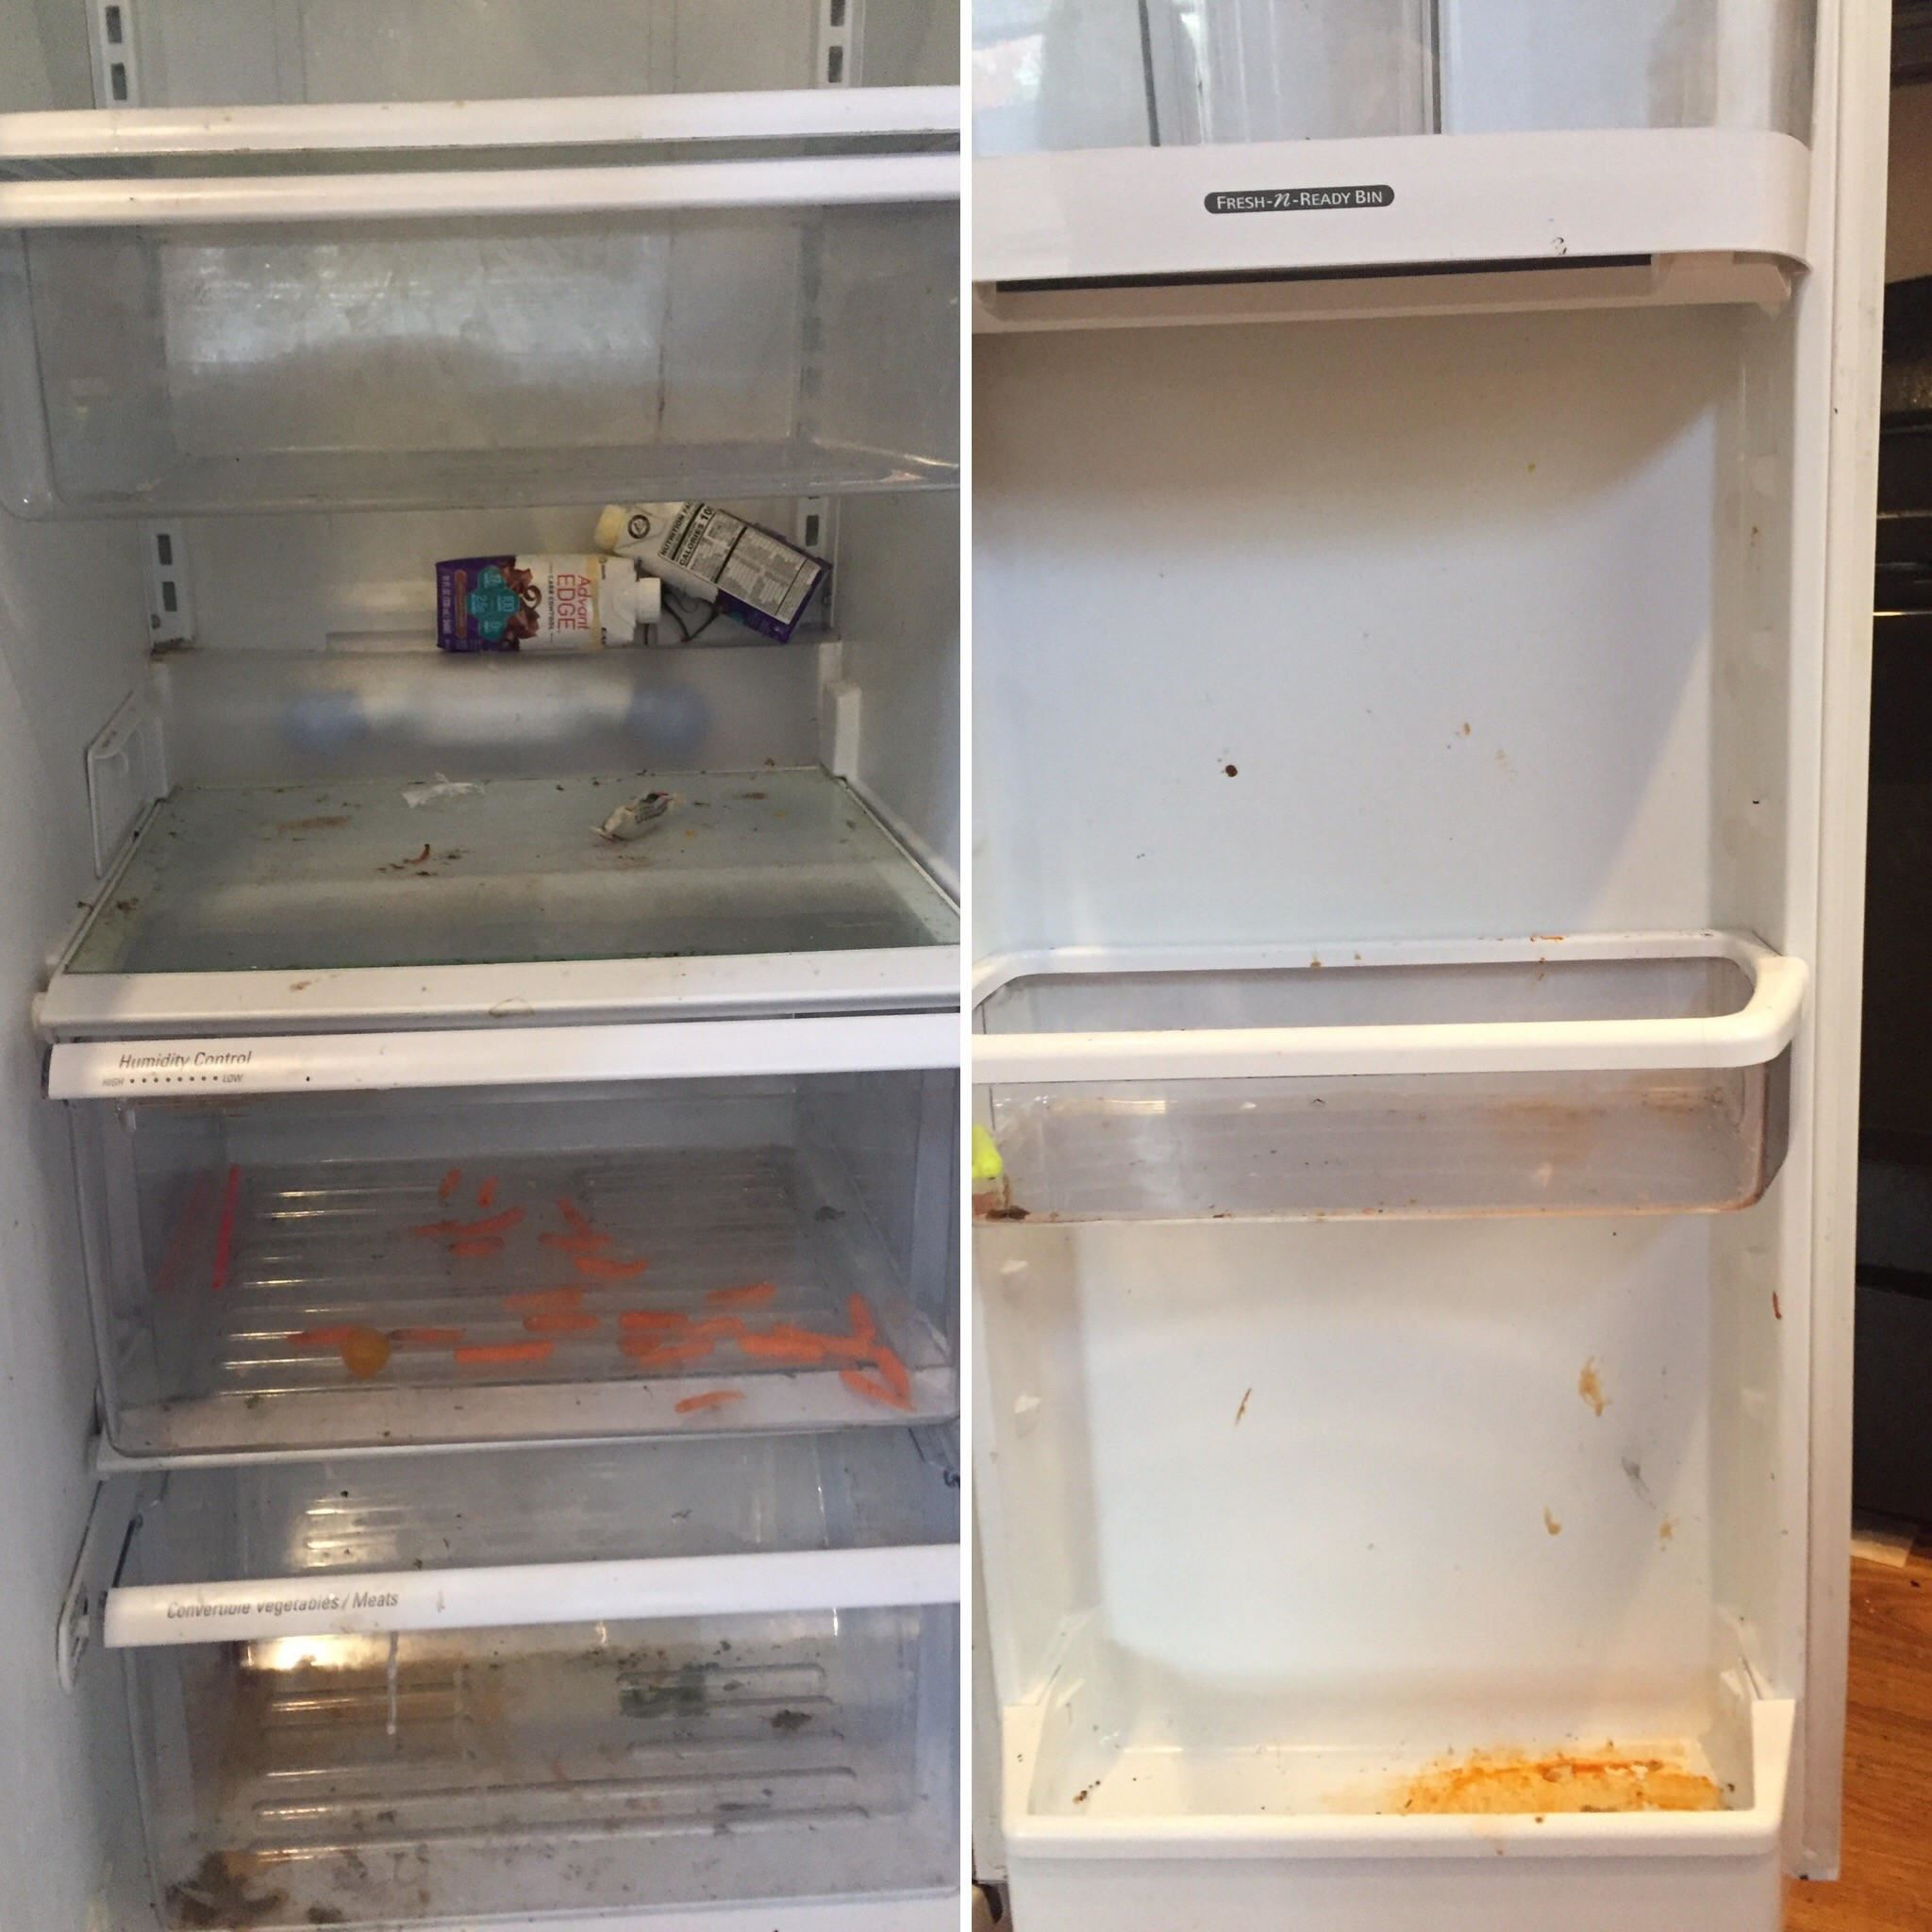 refrigerator before being cleaned